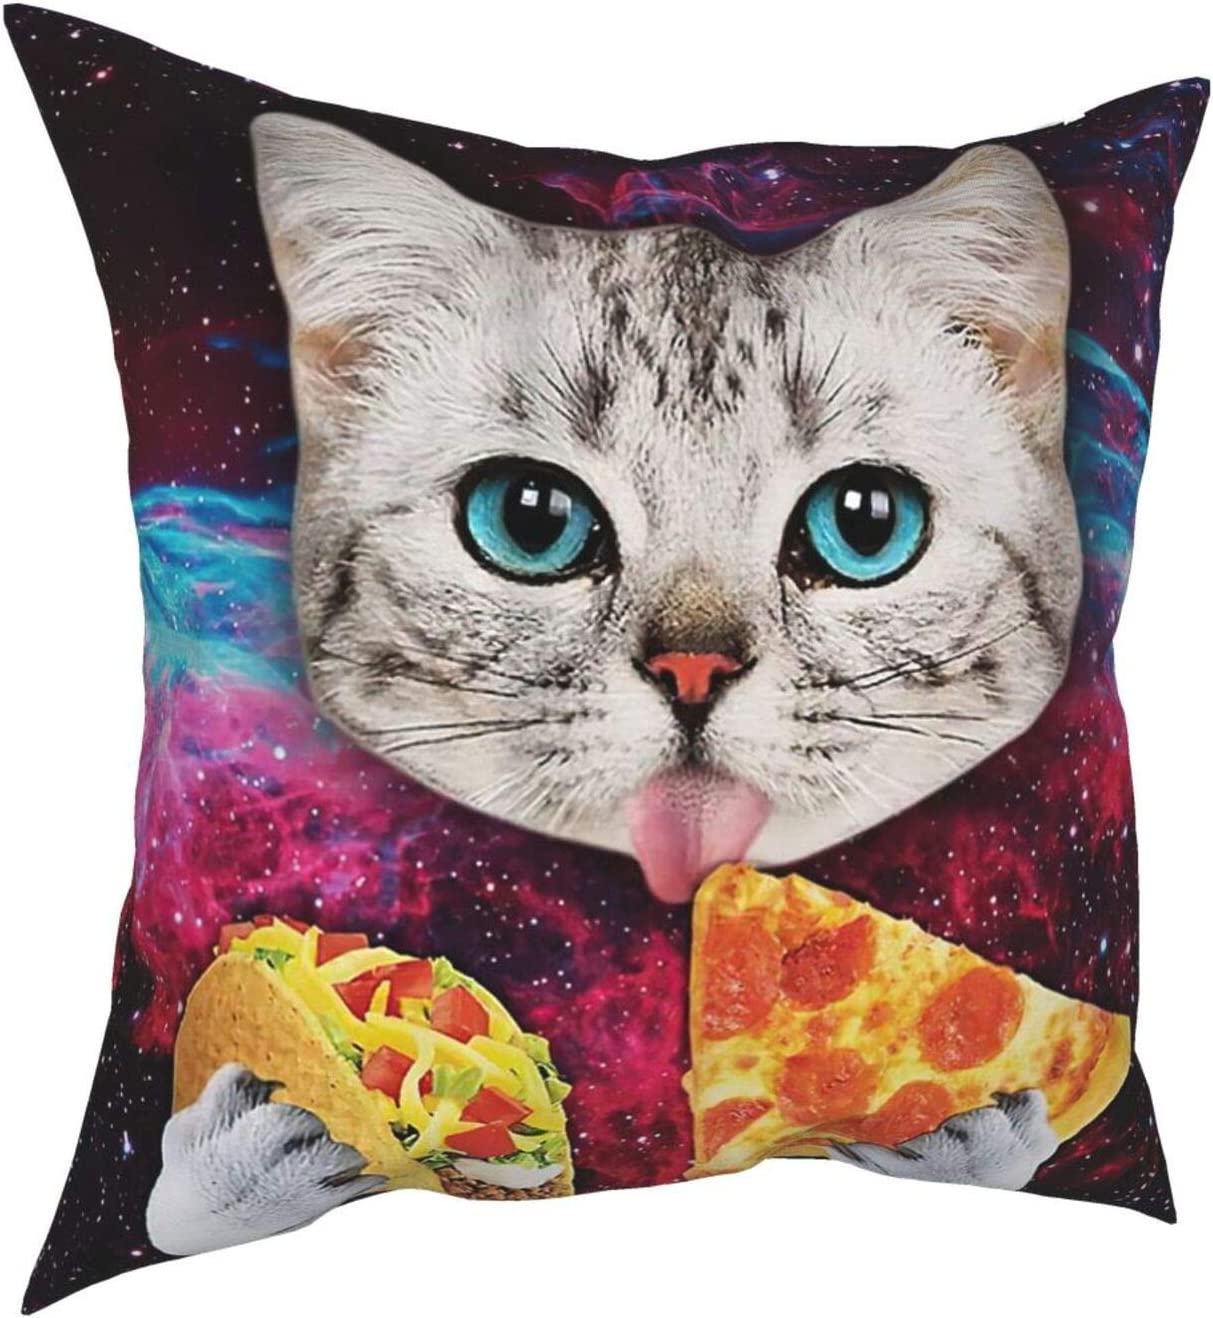 WAZHIJIA Space Cat Pizza Decorative Throw Pillow Covers 18 X 18 Inch,Food-Eating Animals in The Galaxy Cushion Cover Square Pillow Cases for Car Sofa Home Decor